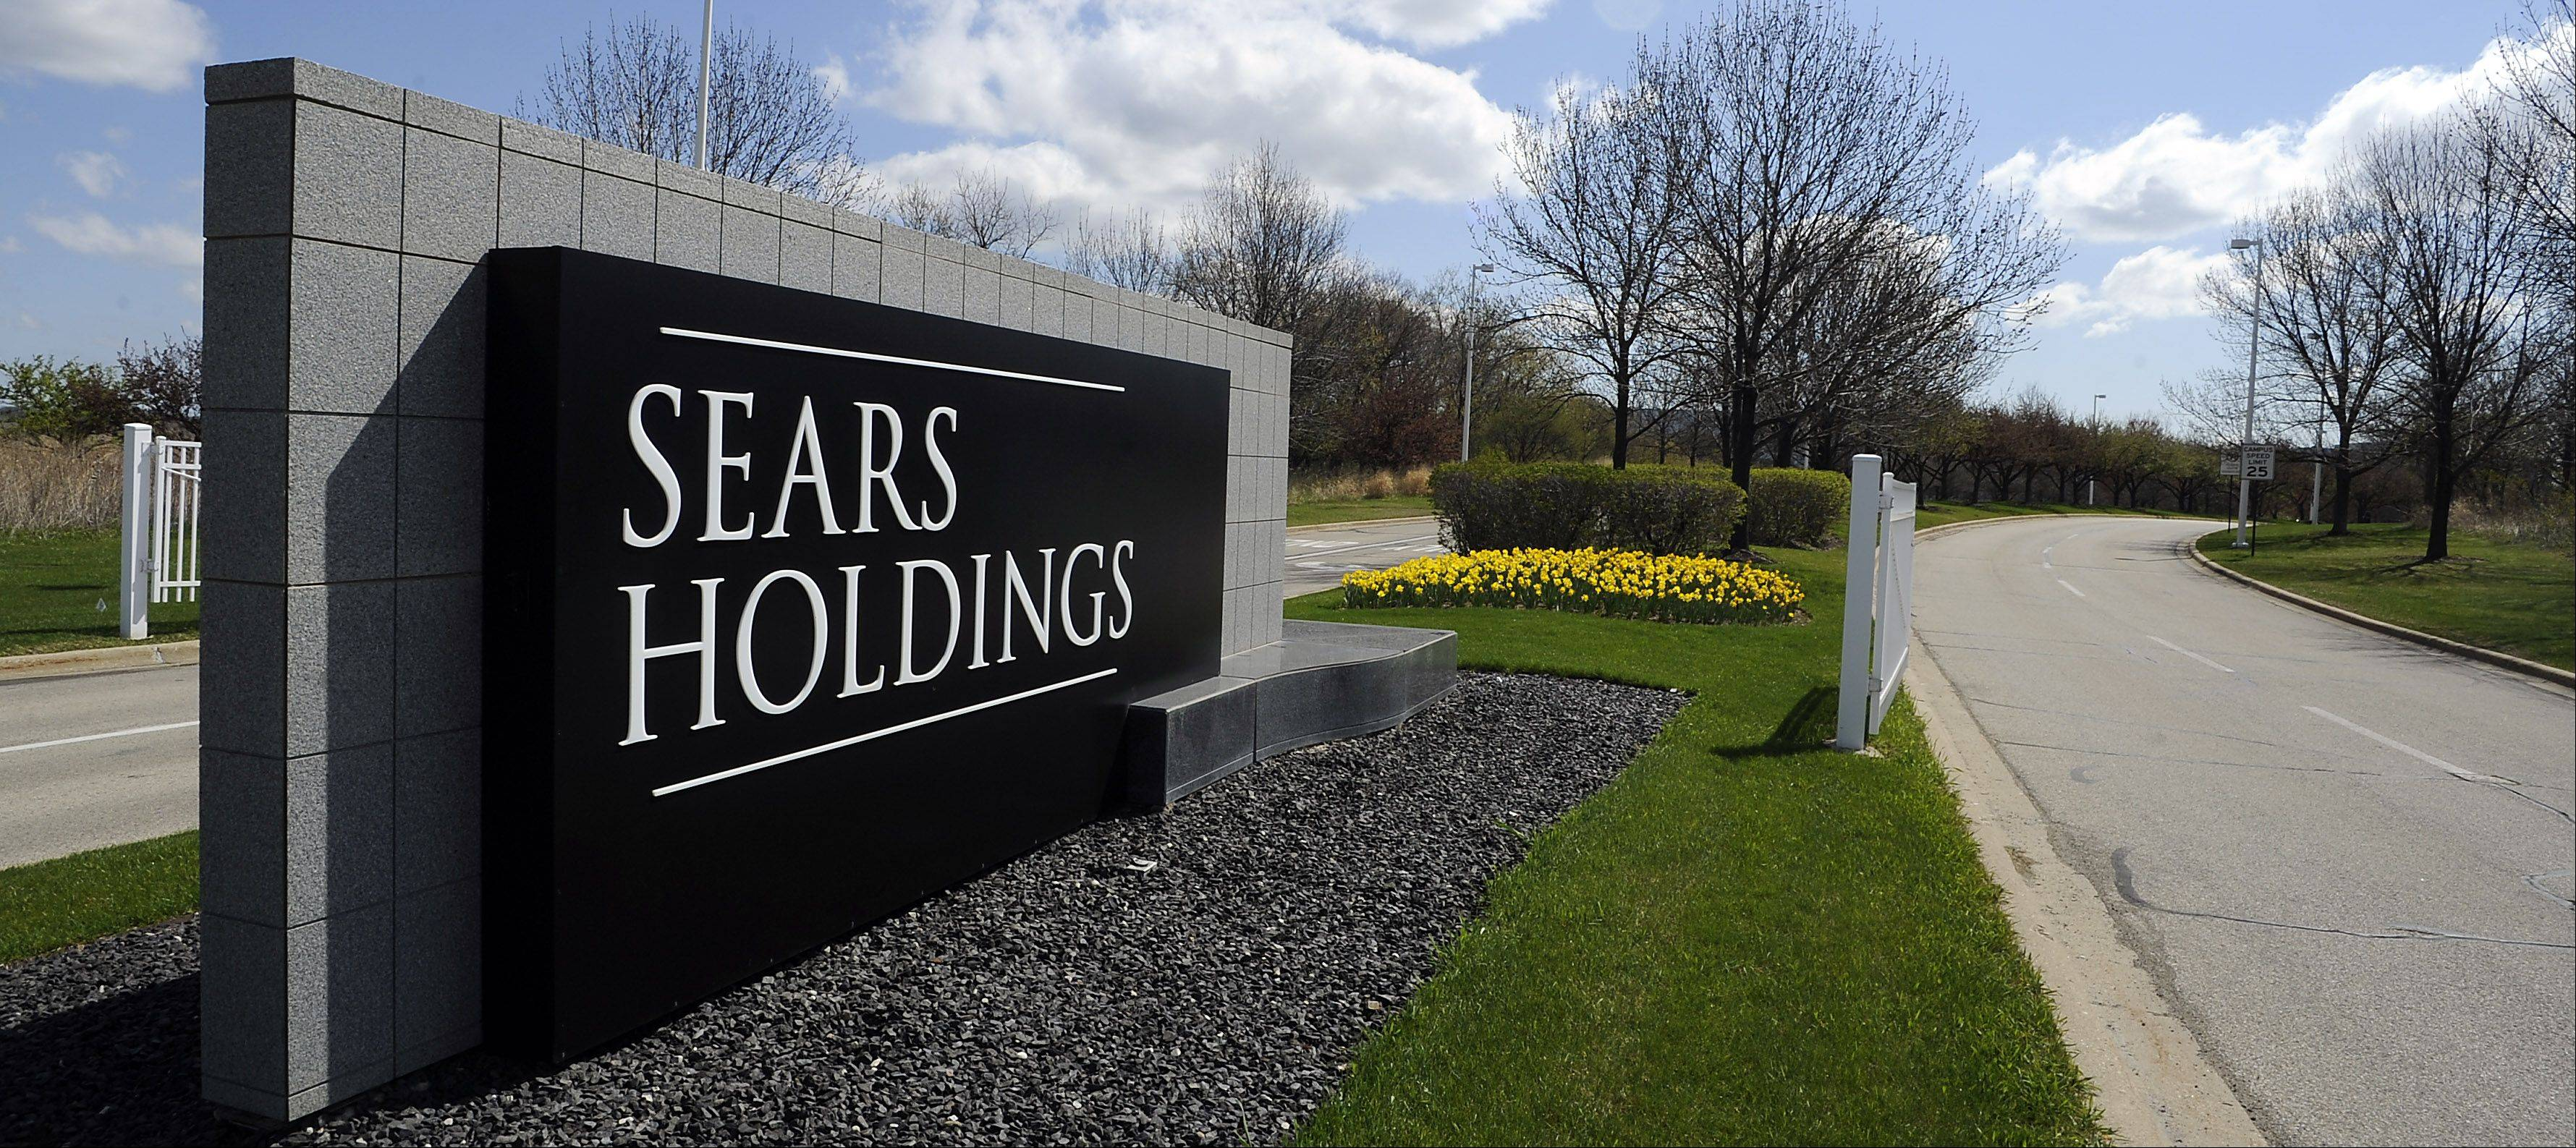 Two years ago, lawmakers approved tax incentives to keep Sears Holdings Corp.'s headquarters at the Prairie Stone campus area in Hoffman Estates.